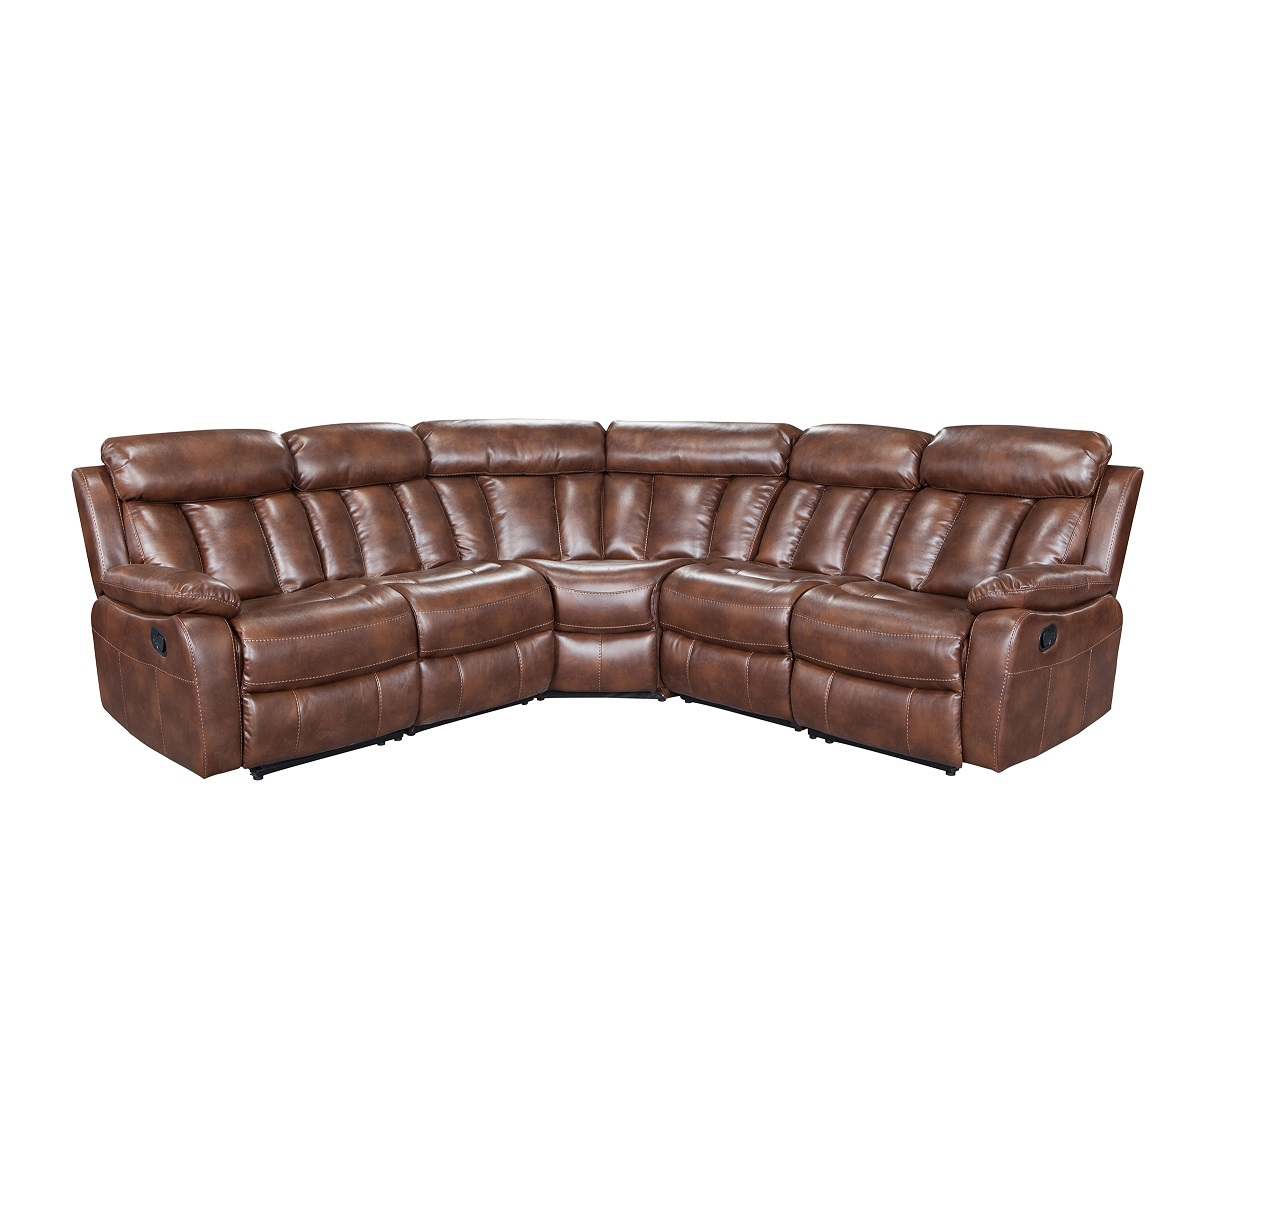 Living room furniture 5 seater italian leather sectional sofa set